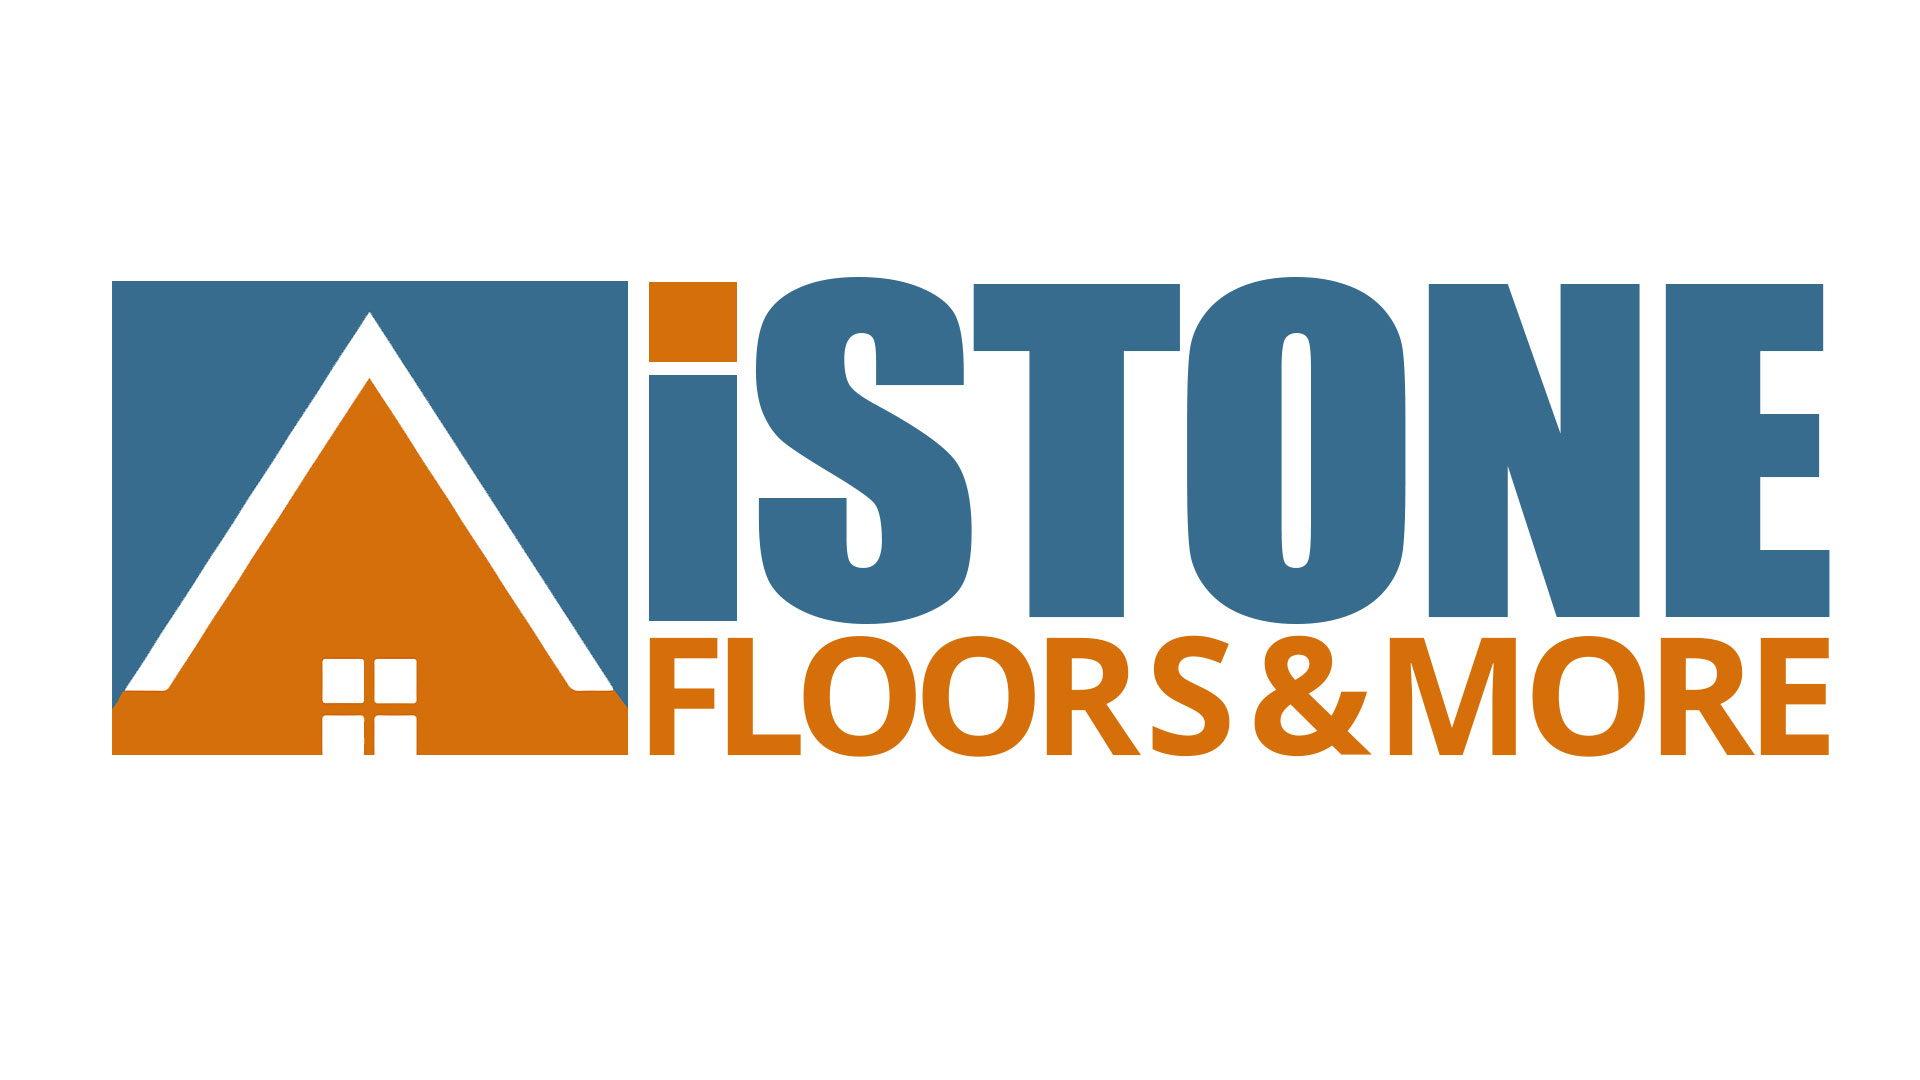 iStone Floors & More - 6512 Precinct Line Rd Suite C, Hurst, TX 76054